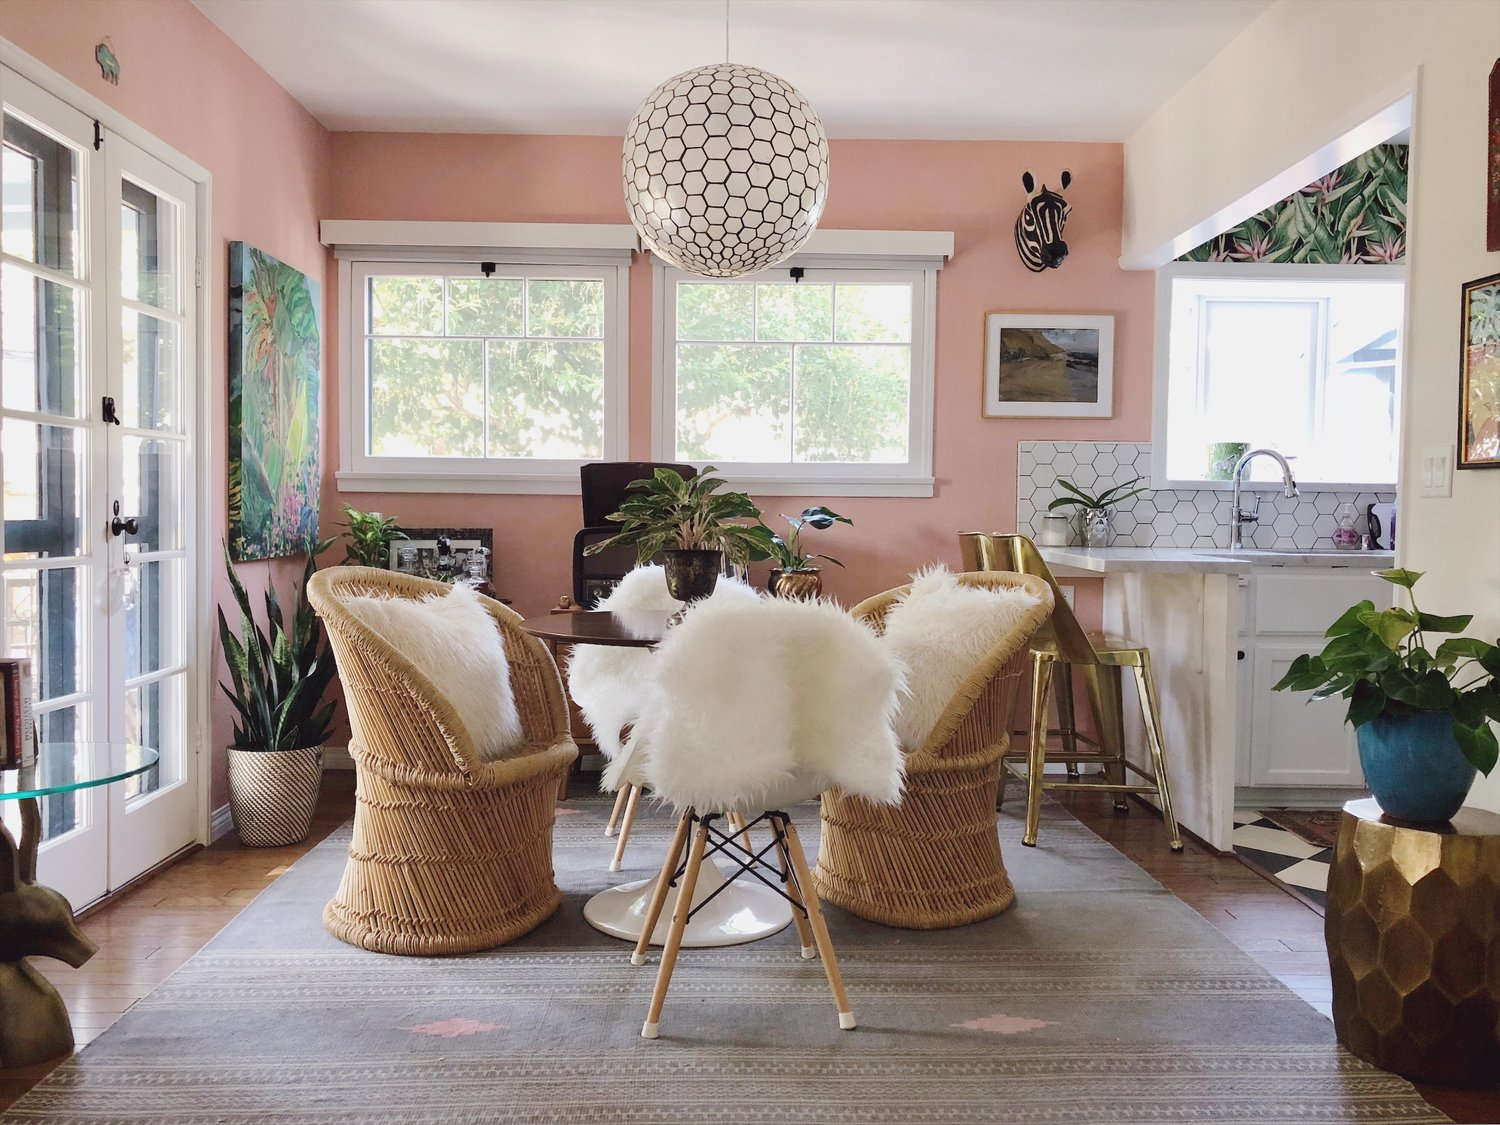 How To Add California Inspired Decor Your Home